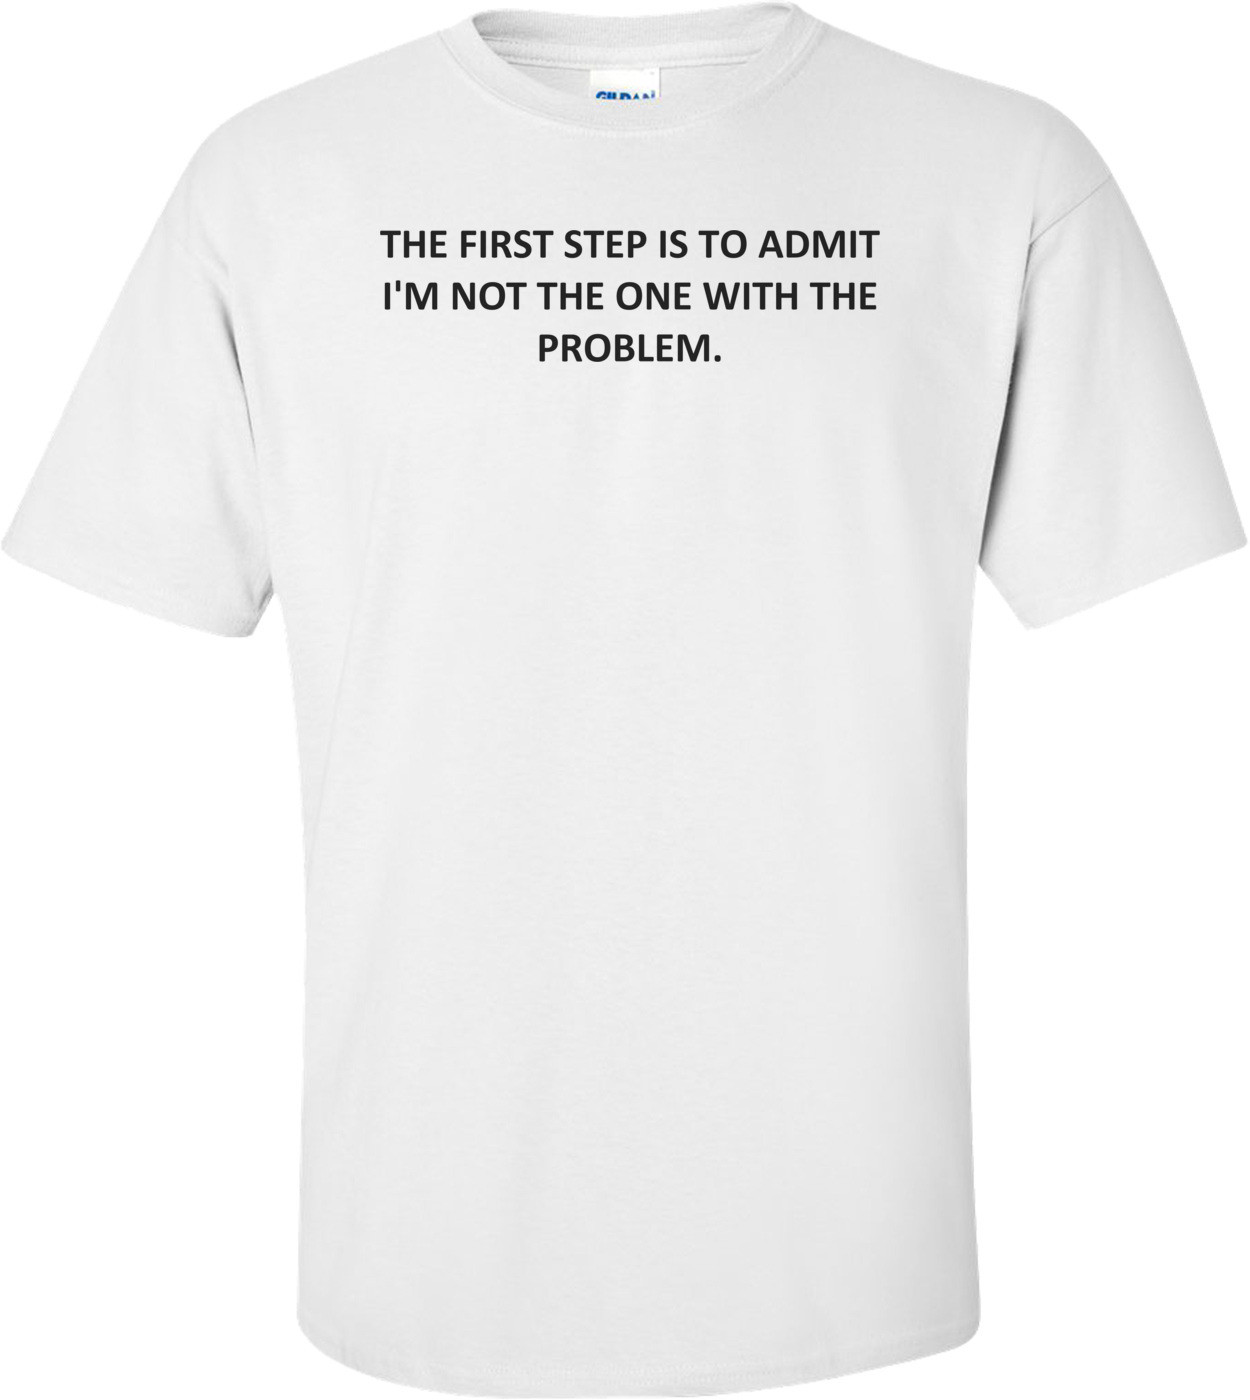 THE FIRST STEP IS TO ADMIT I'M NOT THE ONE WITH THE PROBLEM. Shirt